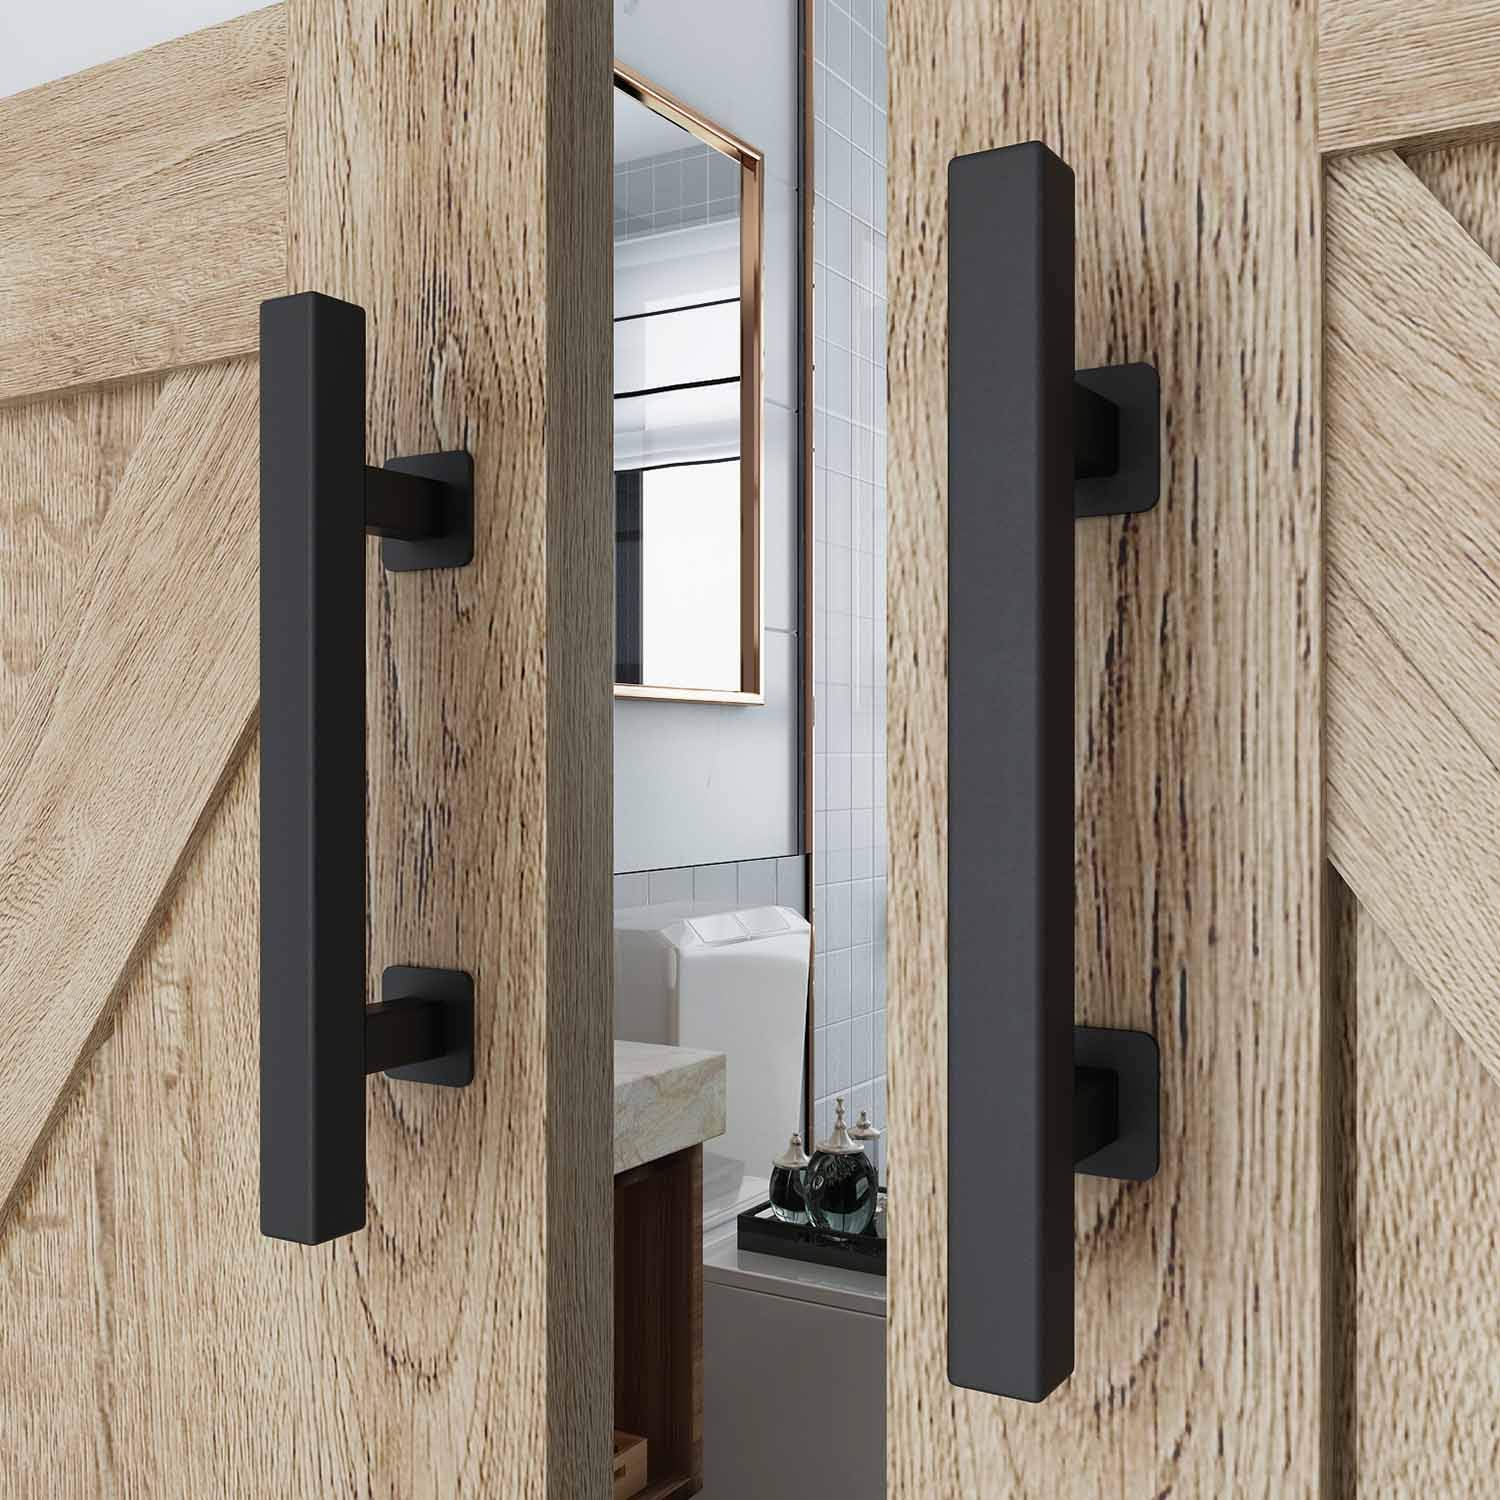 EaseLife 2Pcs 12'' Sliding Barn Door Handle with Pull Flush Set,for Gate Kitchen Furniture Cabinet Closet 2/Pack,Square by EaseLife (Image #2)